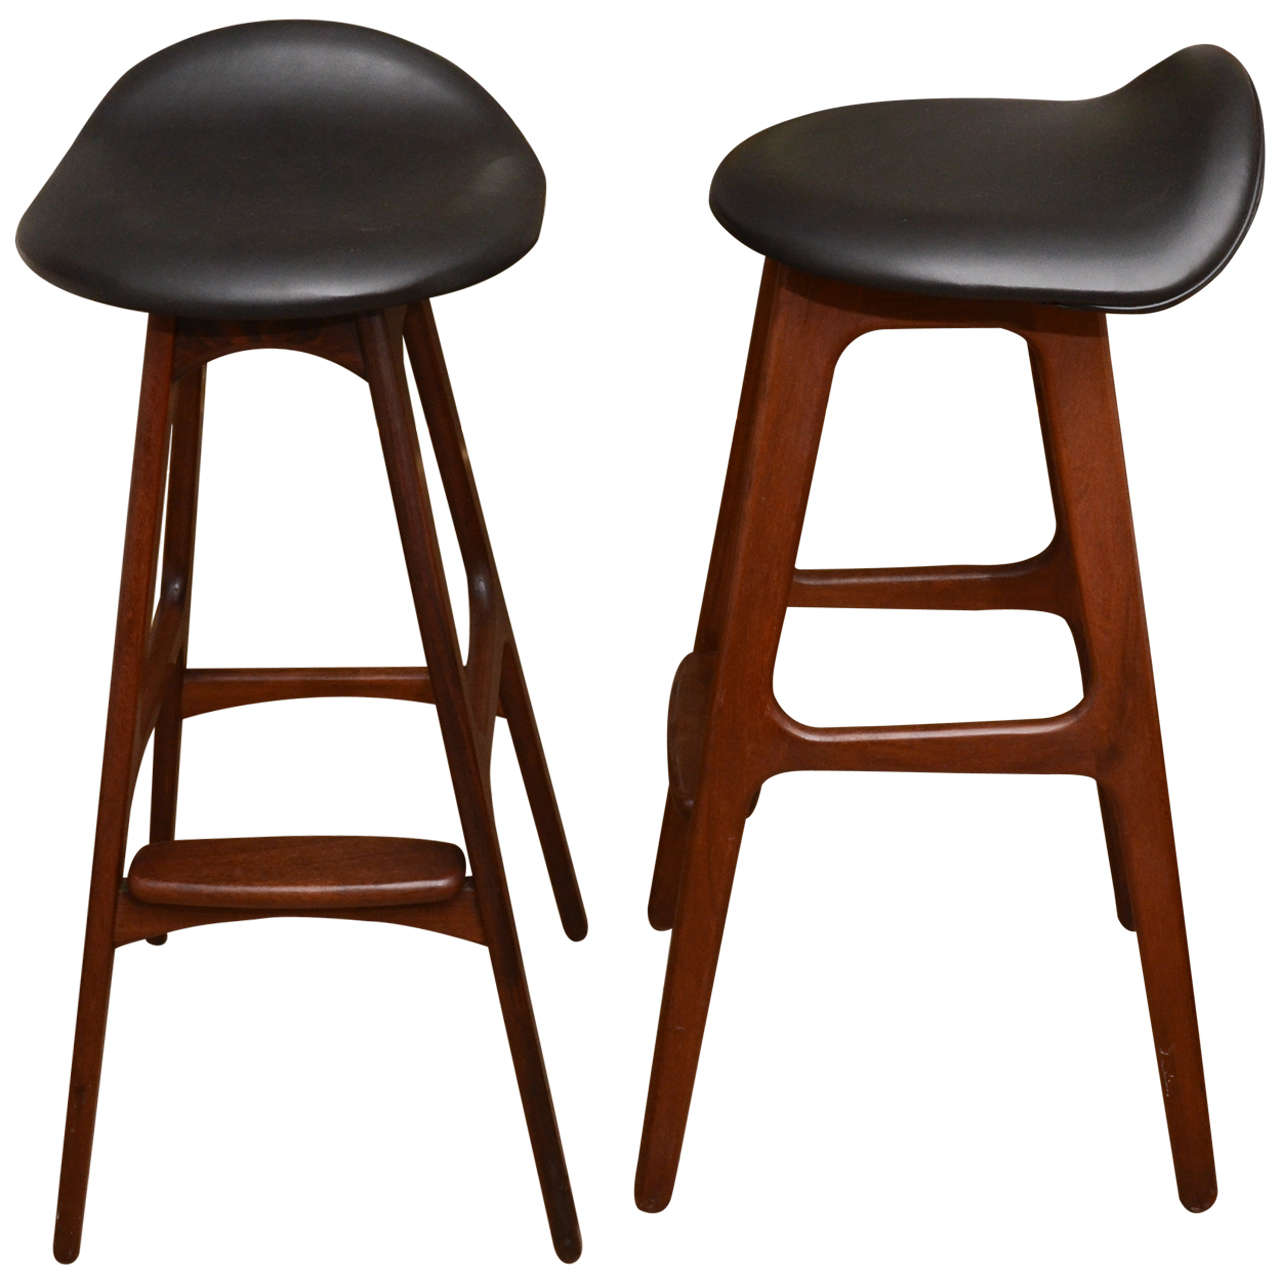 Pair of erik buch bar stools at 1stdibs - Erik buch bar stool ...